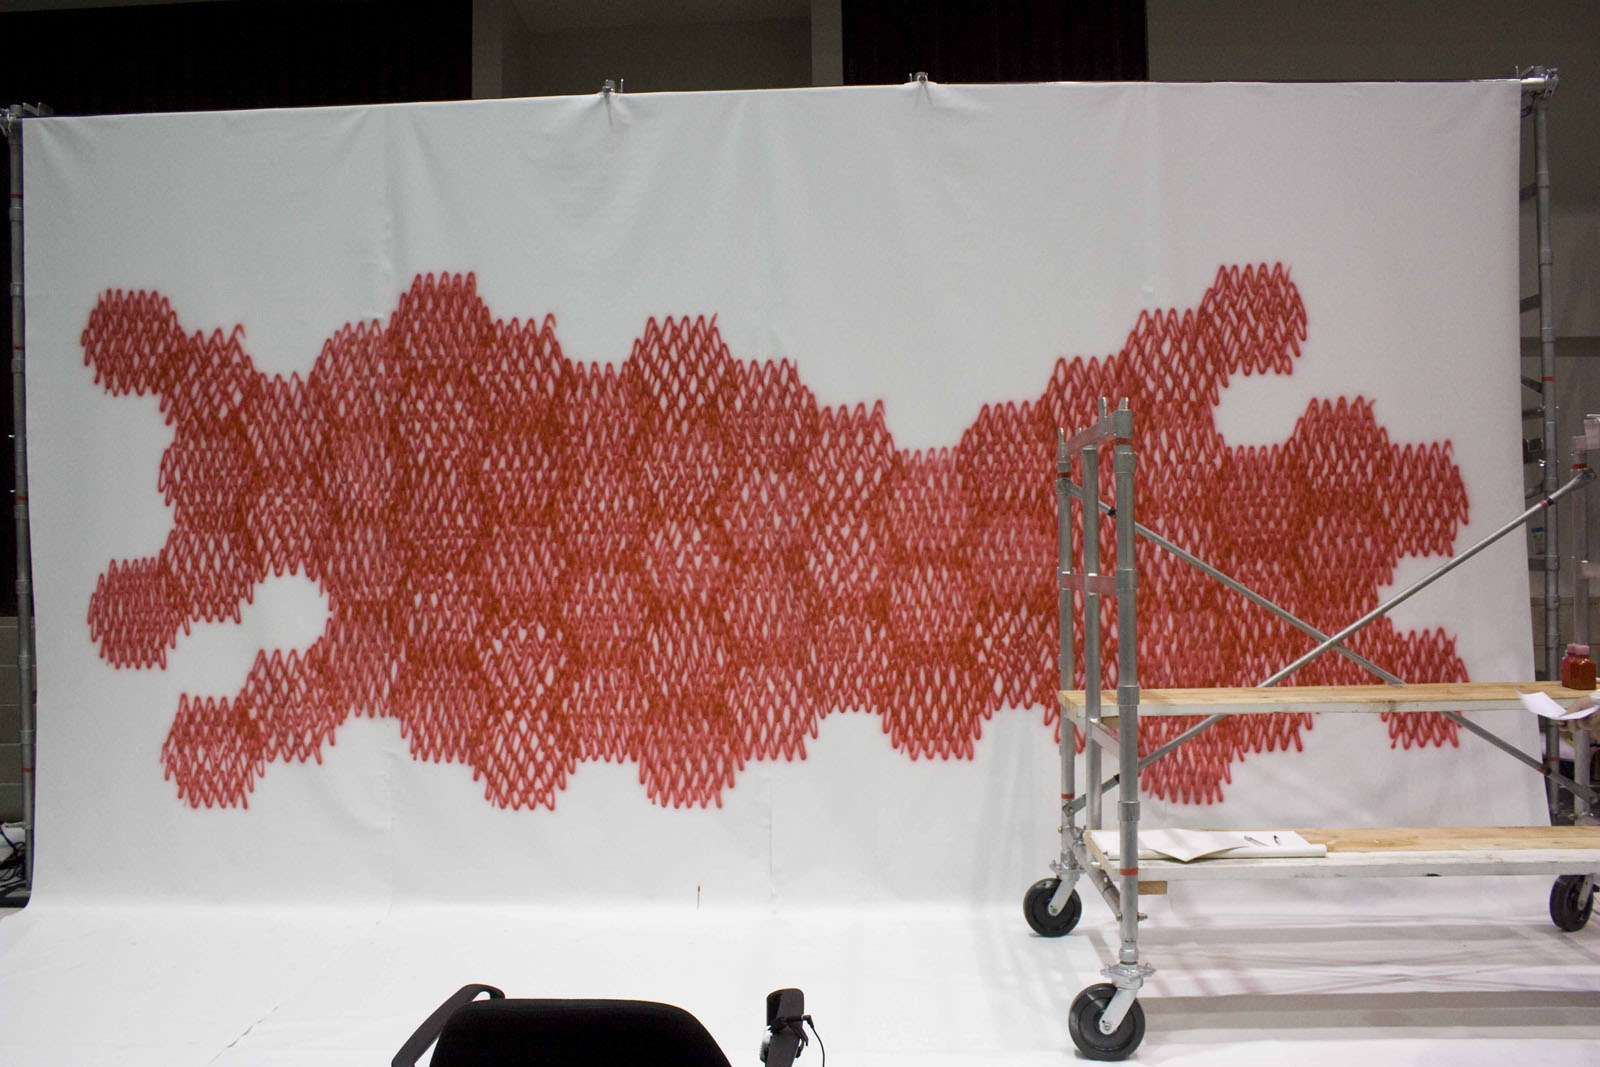 Here's a look at the honeycomb-like pattern created by Sasaki on the Dwell on Design Show Floor.